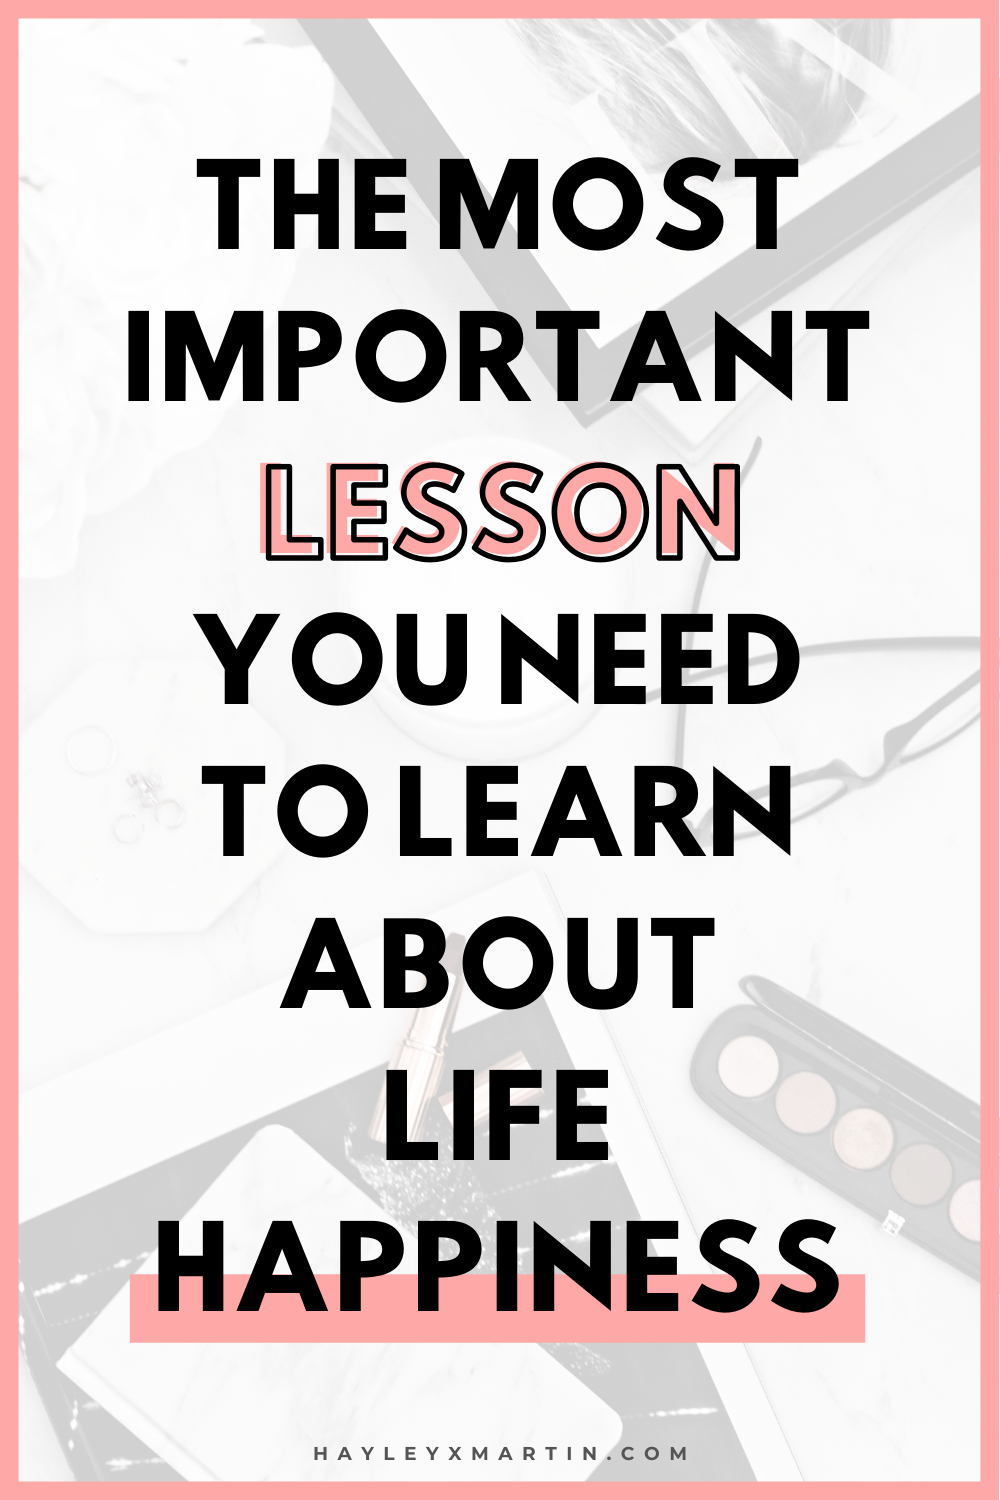 THE MOST IMPORTANT LESSON YOU NEED TO LEARN ABOUT LIFE HAPPINESS